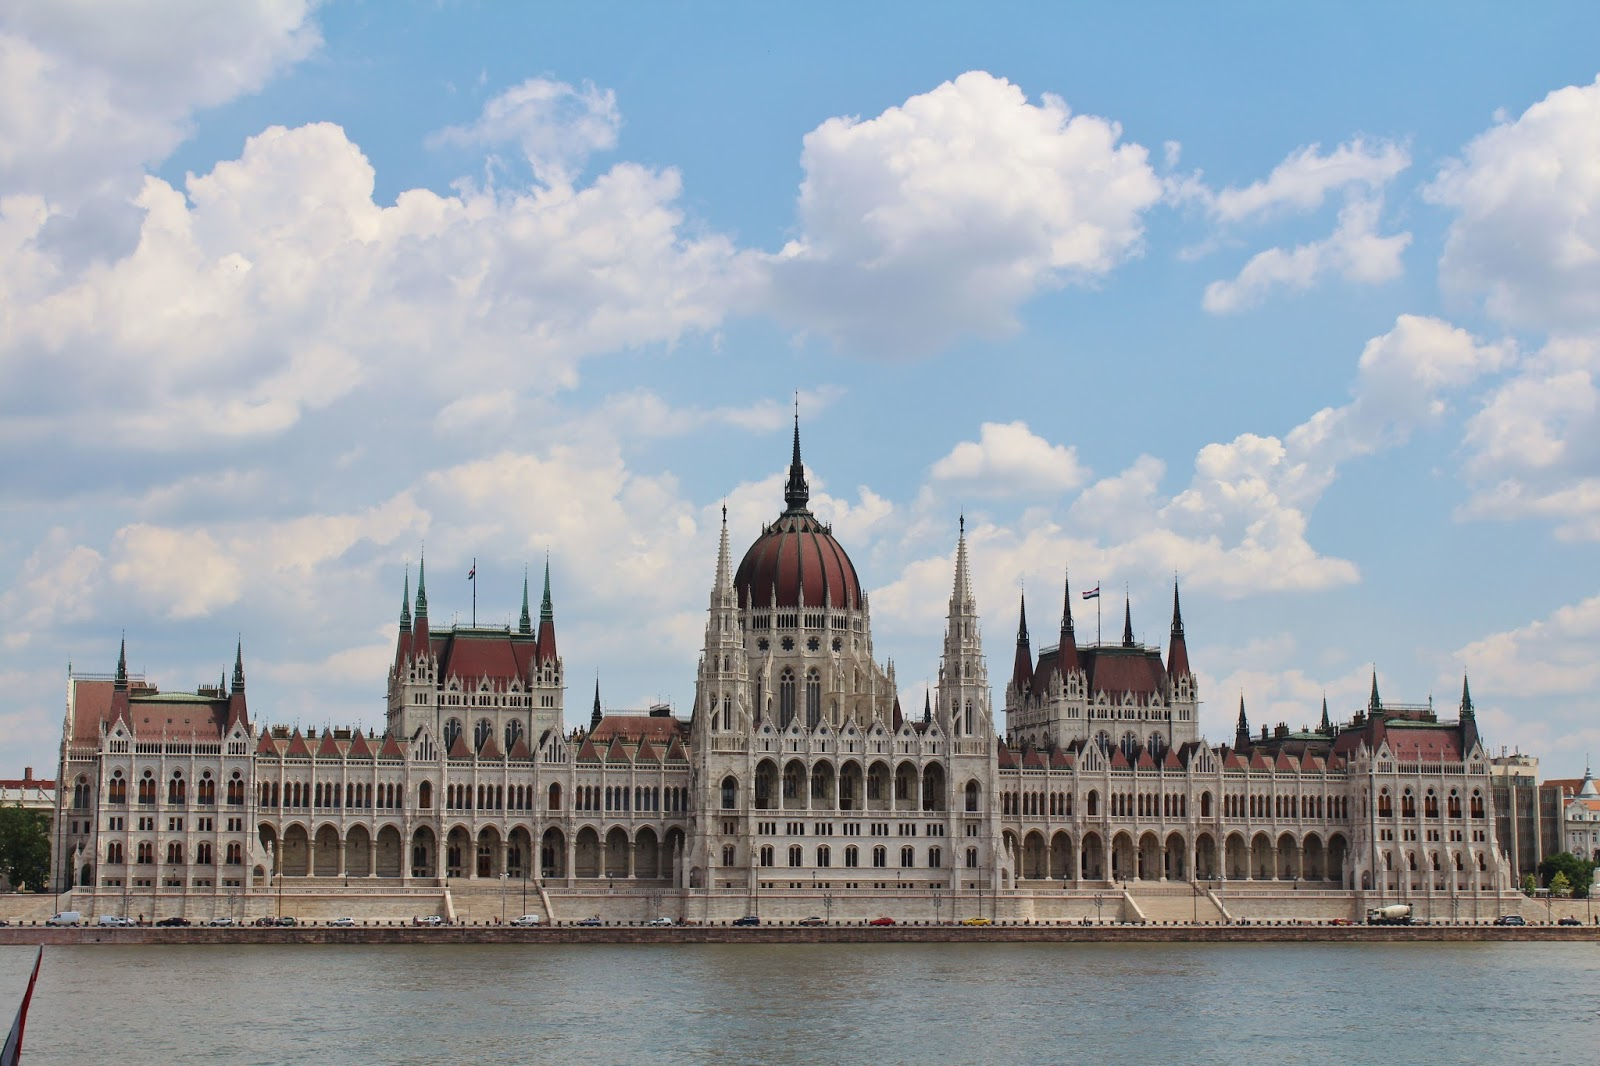 Hungarian Parliament Building besides River Danube, Budapest